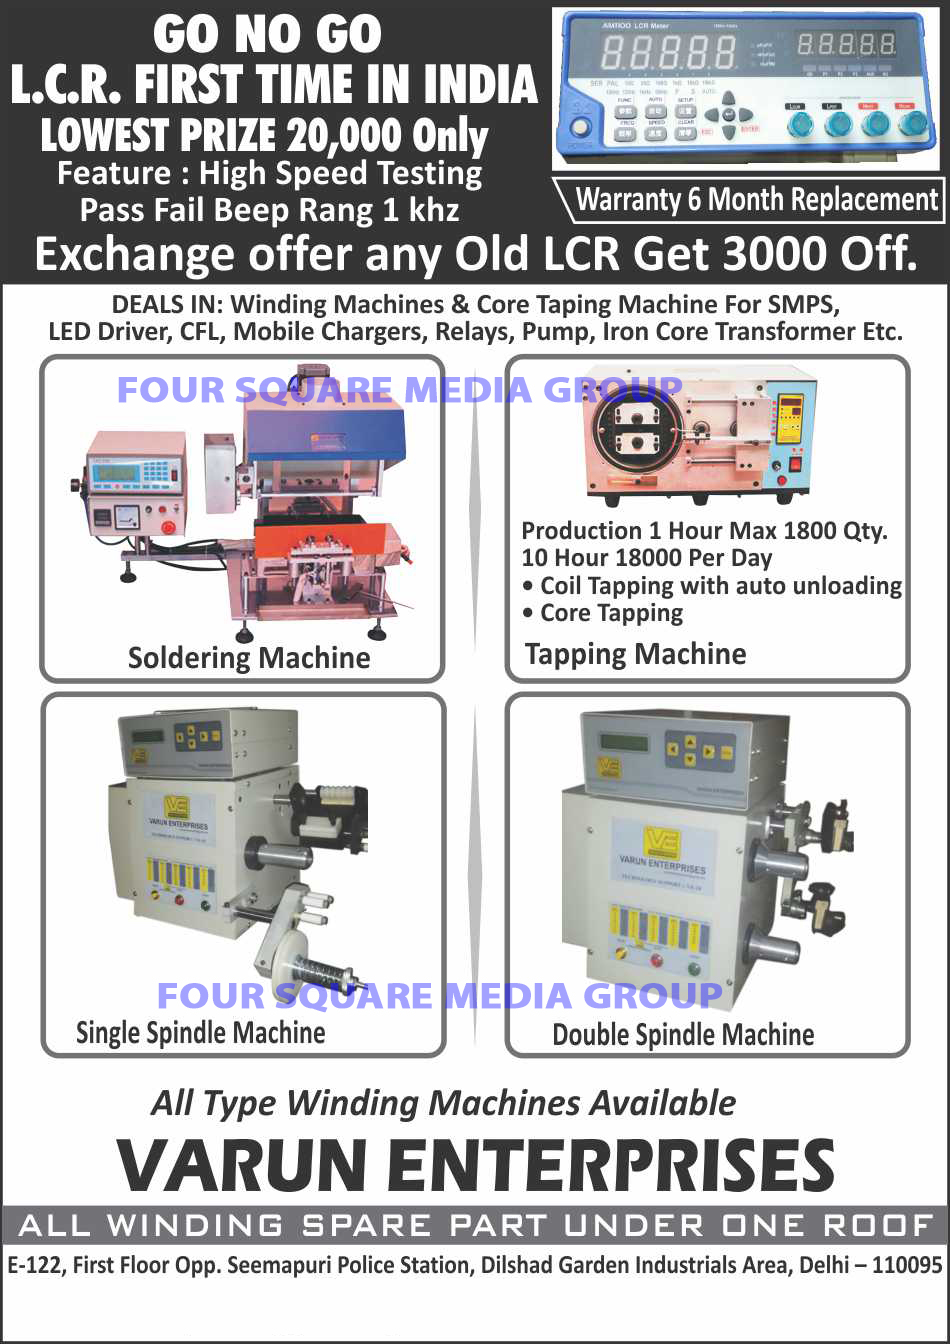 Winding Machine Repairs, Winding Machines, Core Taping Machines, SMPS Core Taping Machines, Led Driver Core Taping Machines, CFL Core Taping Machines, Mobile Charger Core Taping Machines, Relay Core Taping Machines, Pump Core Taping Machines, Iron Core Transformer Taping Machines, Winding Spare Parts, Spindle Machines, Taping Machines, Soldering Machines, LCR